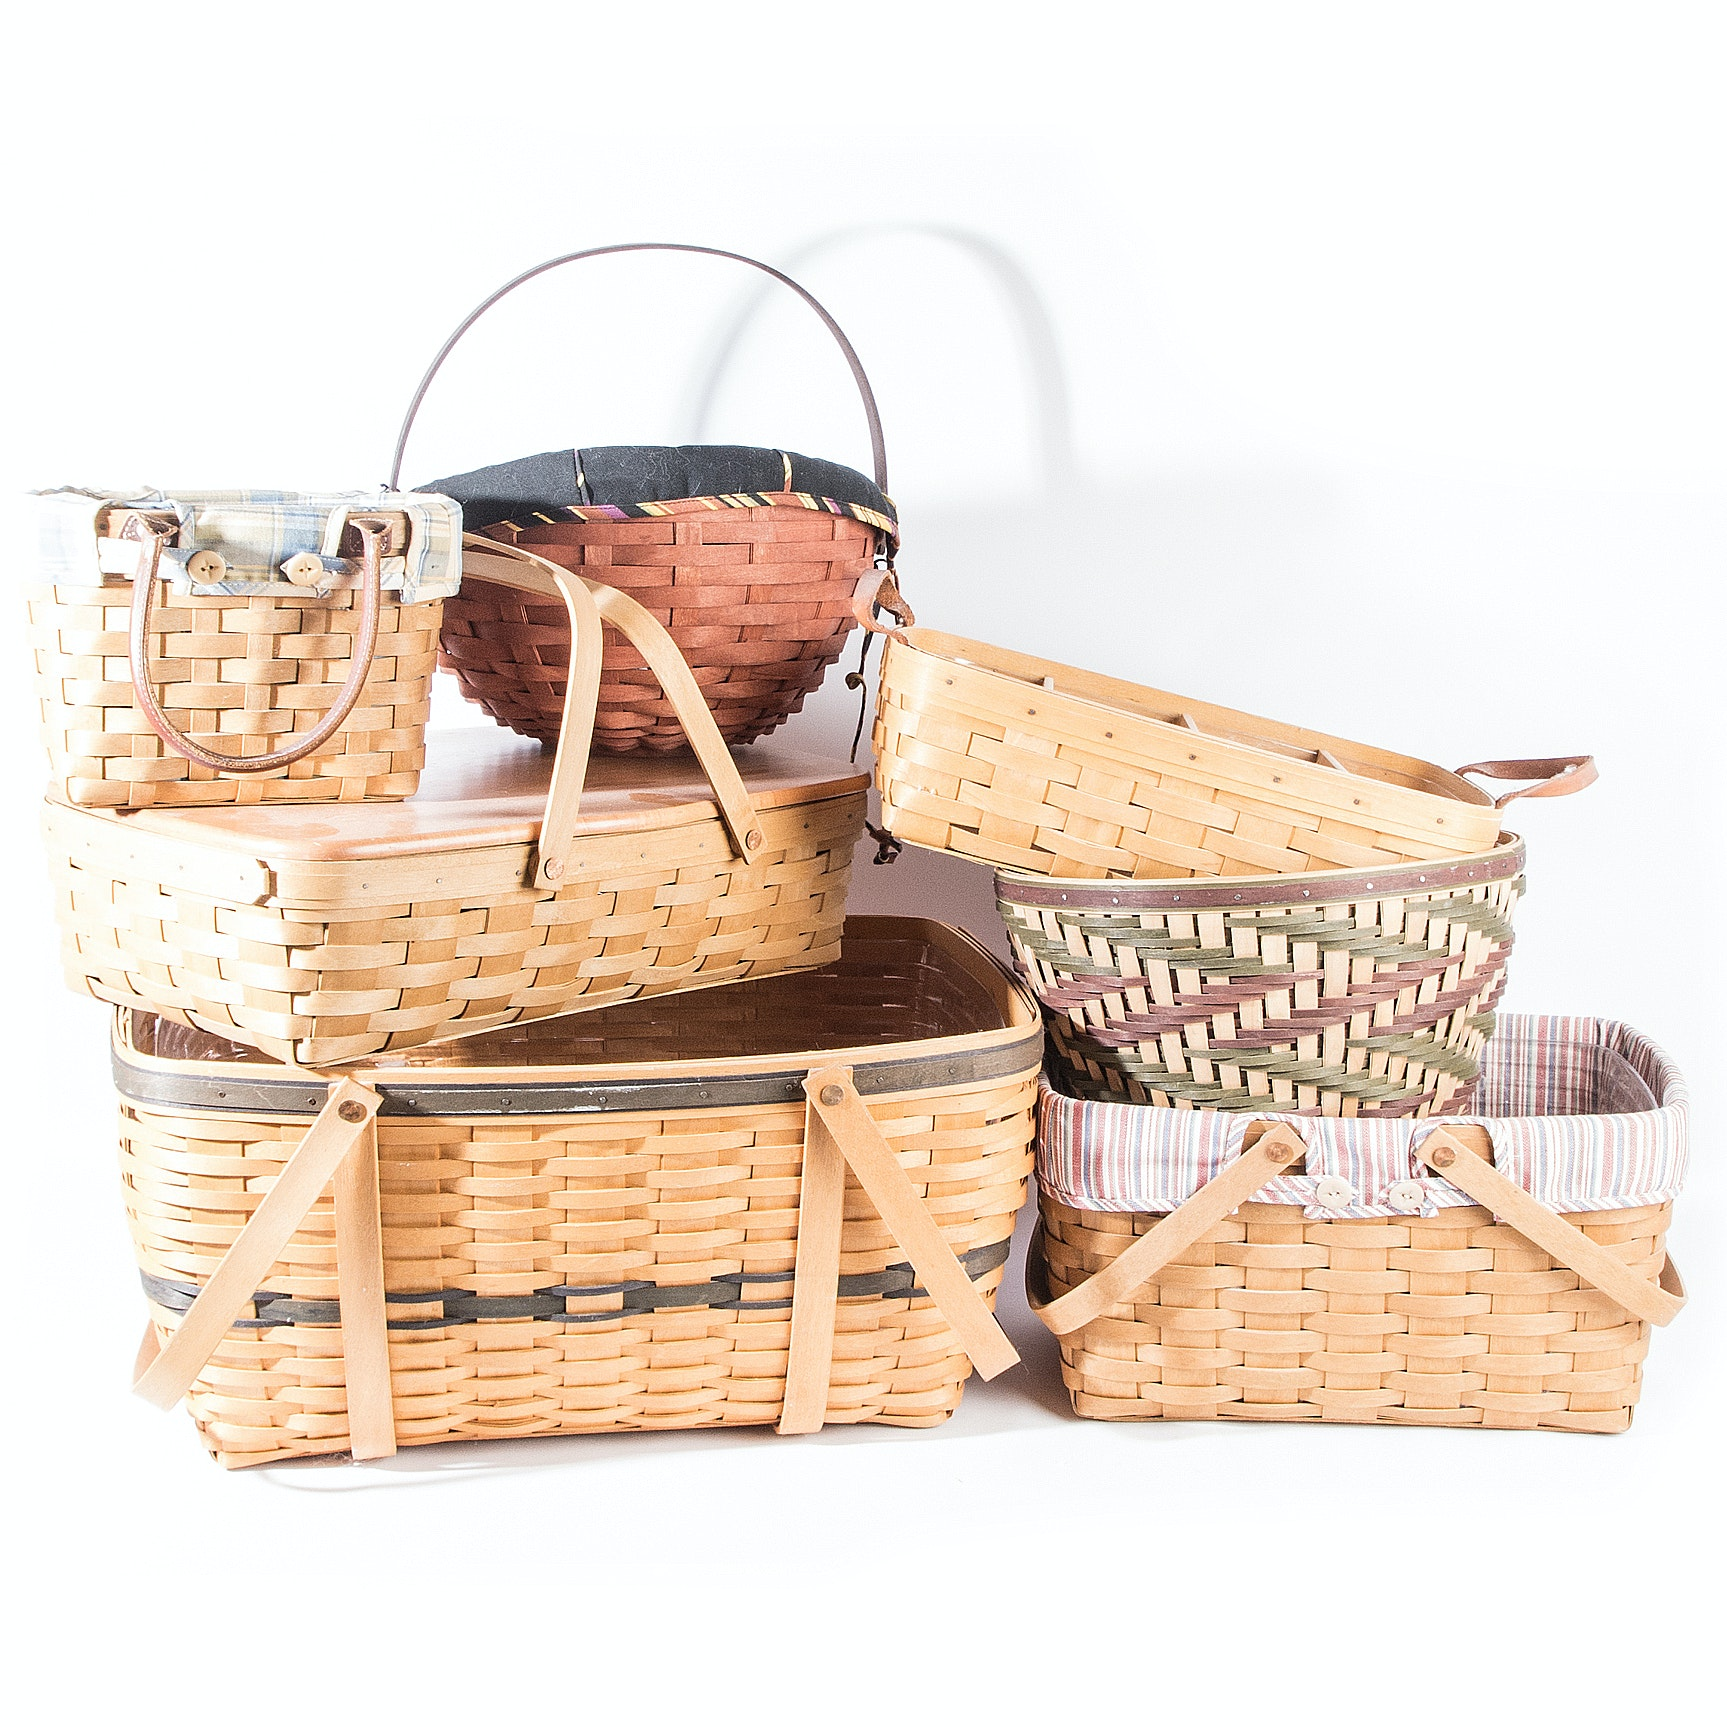 Longaberger Baskets For Sale Longaberger Baskets: longaberger baskets for sale